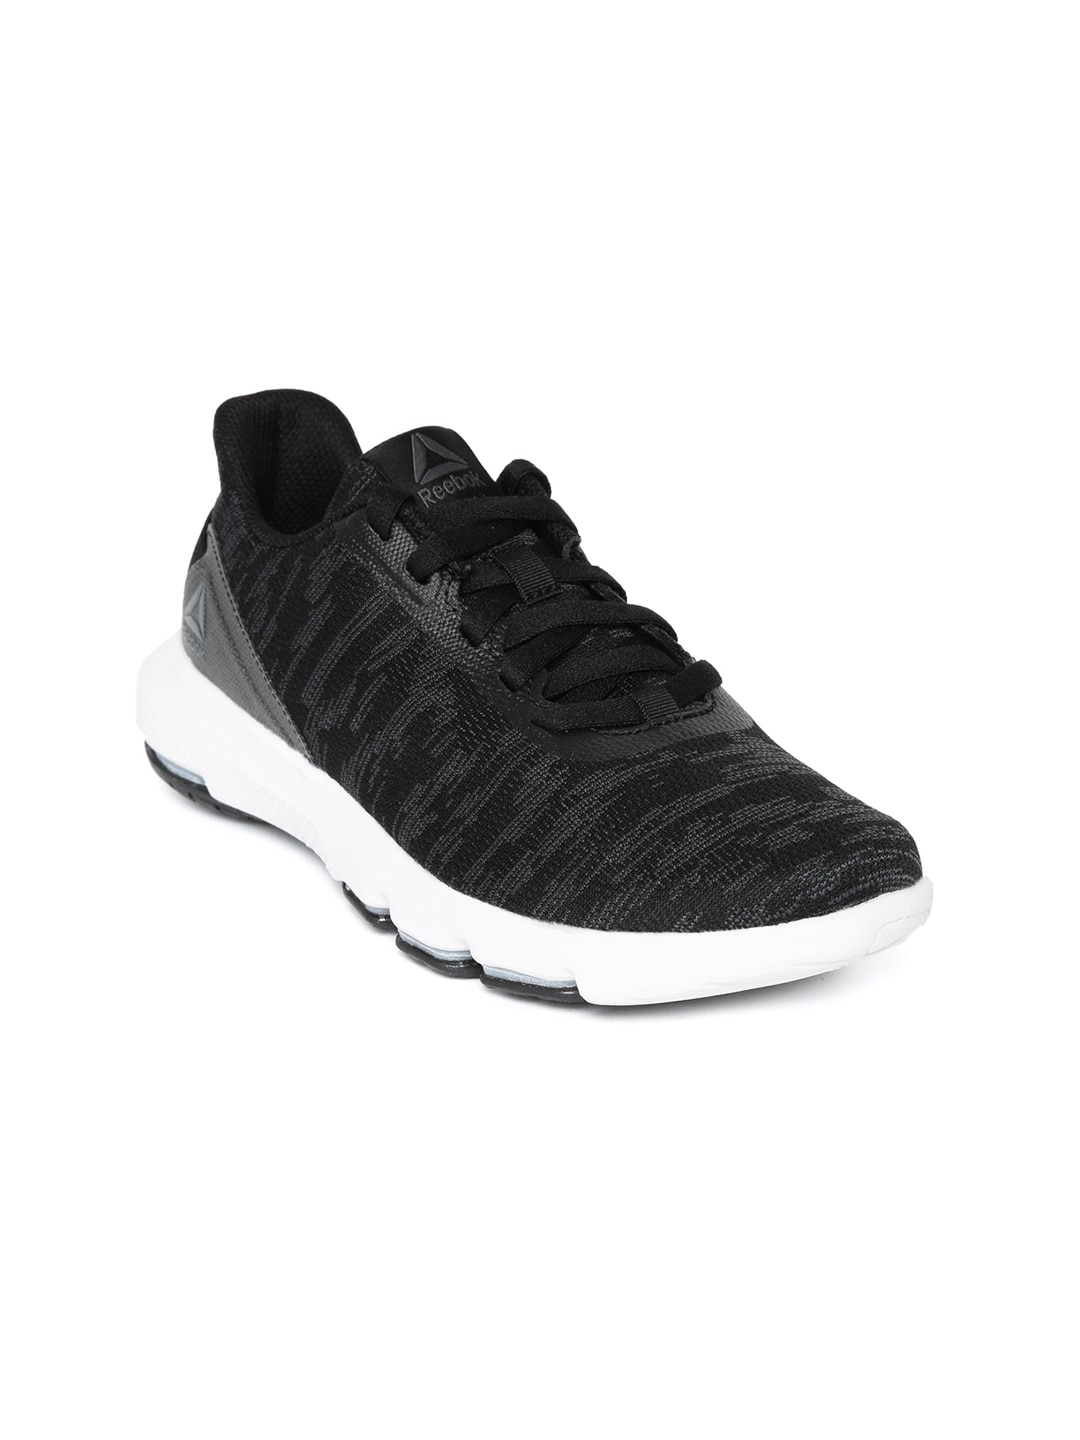 f179126ac5ce6 Reebok Sports Shoes - Buy Reebok Sports Shoes in India